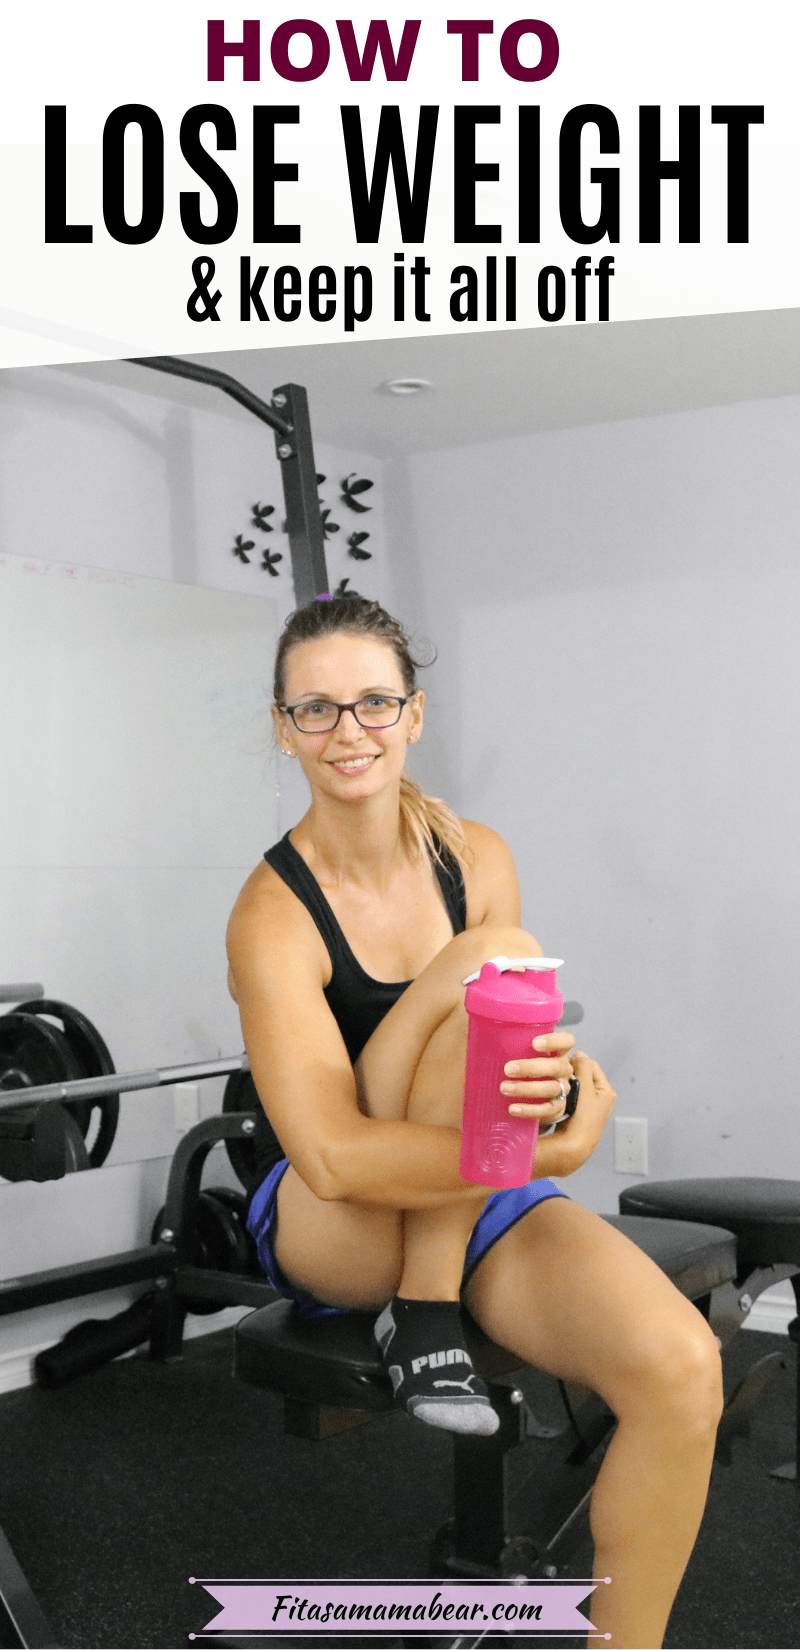 Pinterest image with text: woman in black shirt and blue shorts holding a pink shaker cup sitting on a bench in the gym with text about how to lose weight permanently